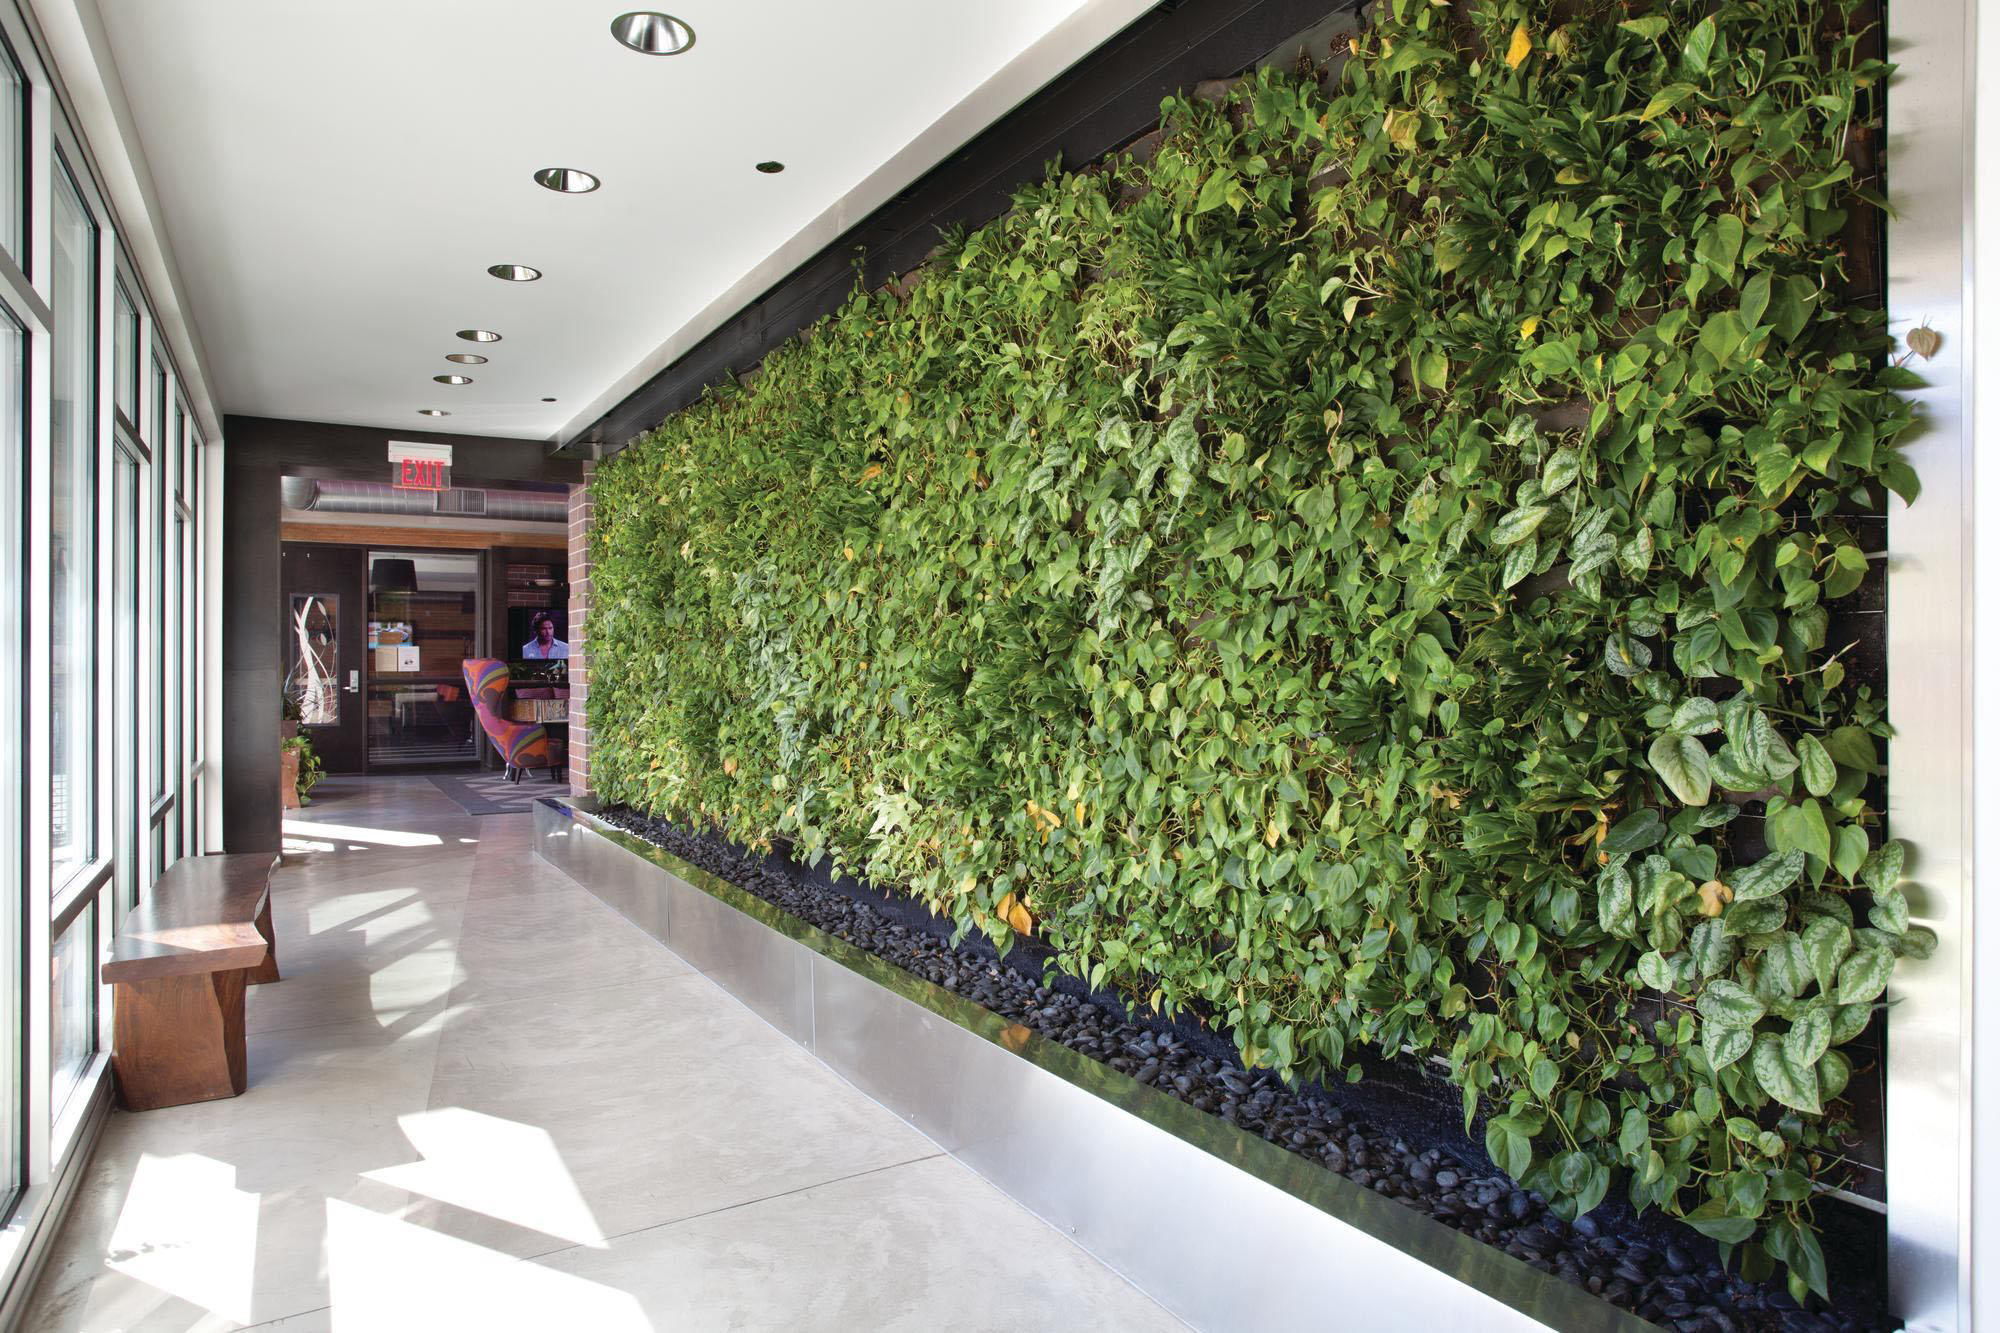 Green wall inside a building hallway in front of a wall of glass with drainage rock garden below.